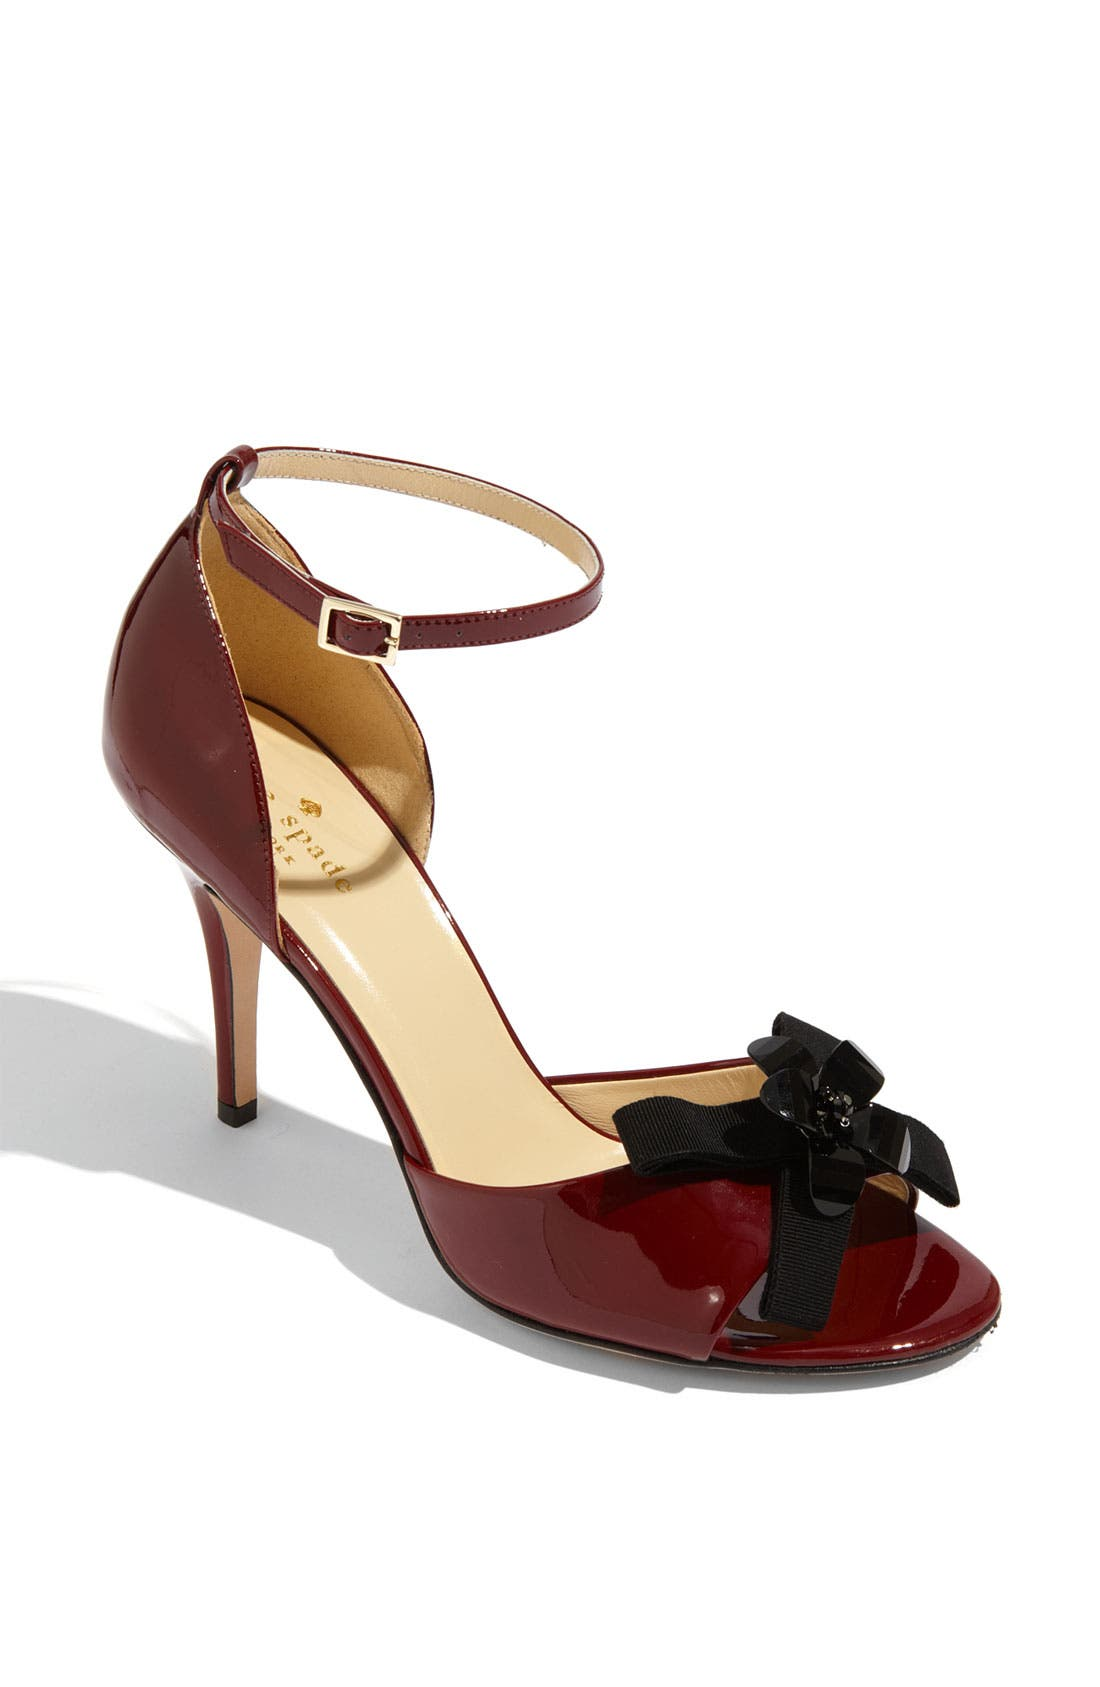 Main Image - kate spade new york 'silvy' sandal